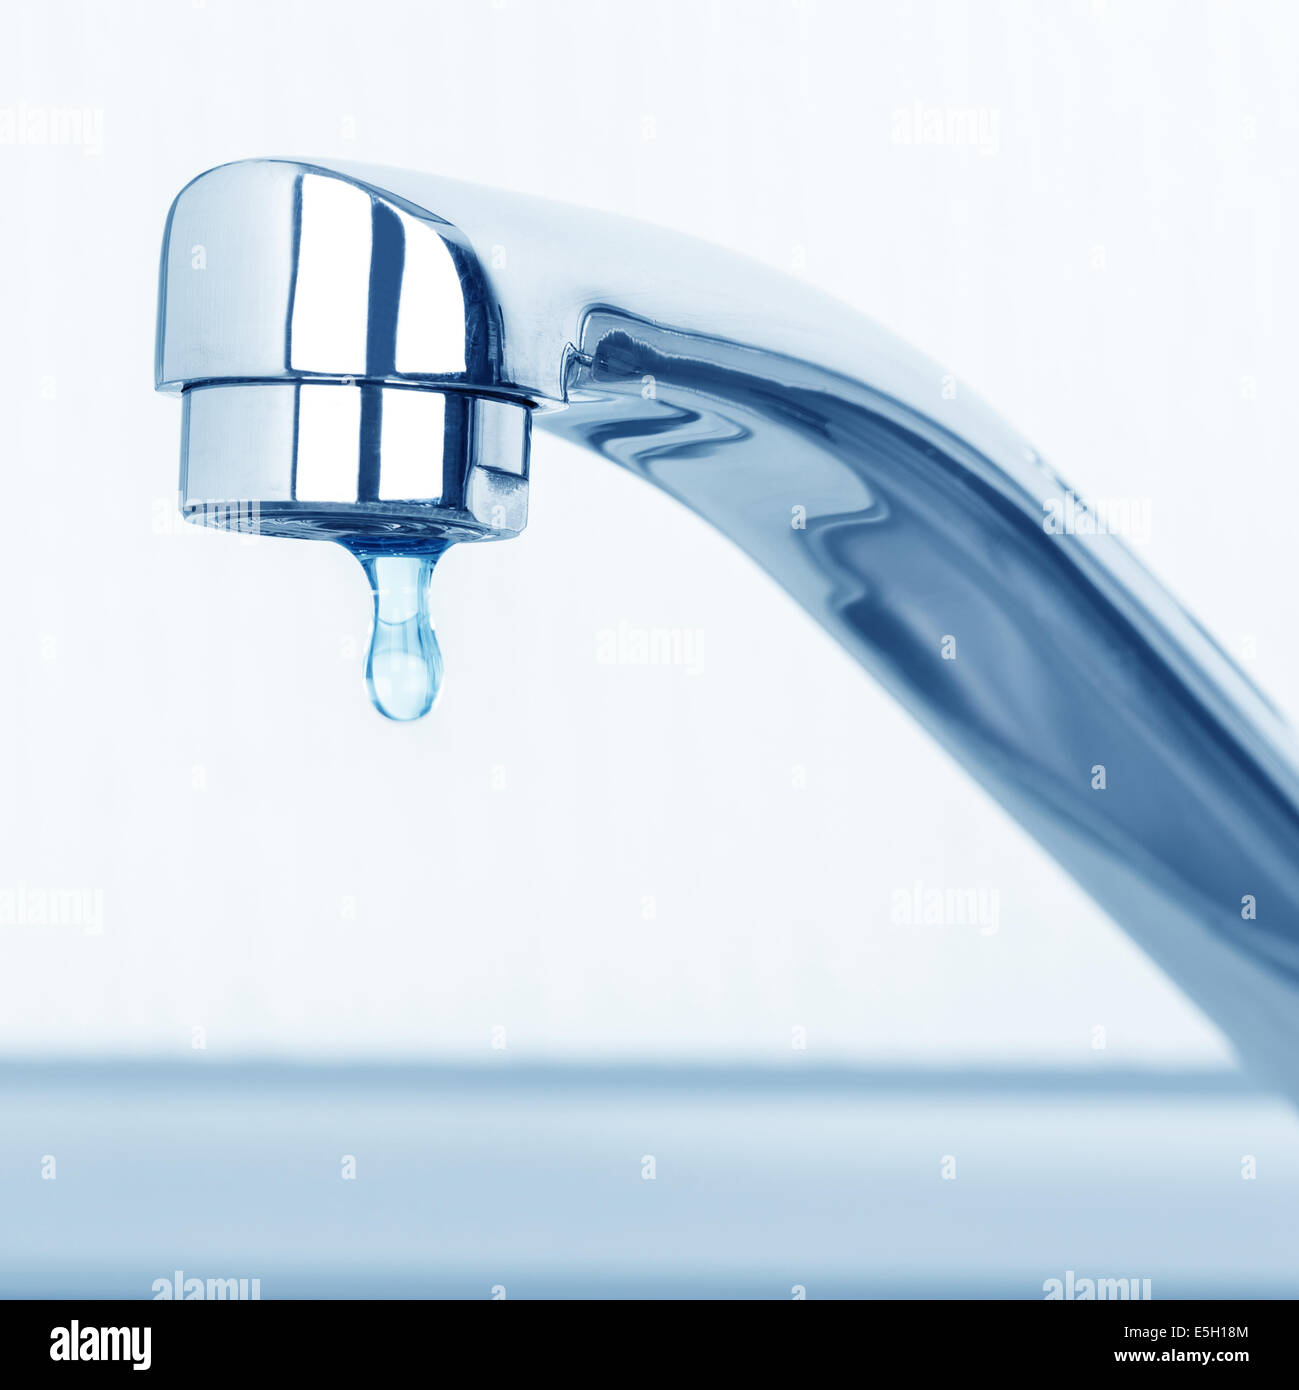 Old Fashioned The League Automatic Faucet Frieze - Faucet Products ...